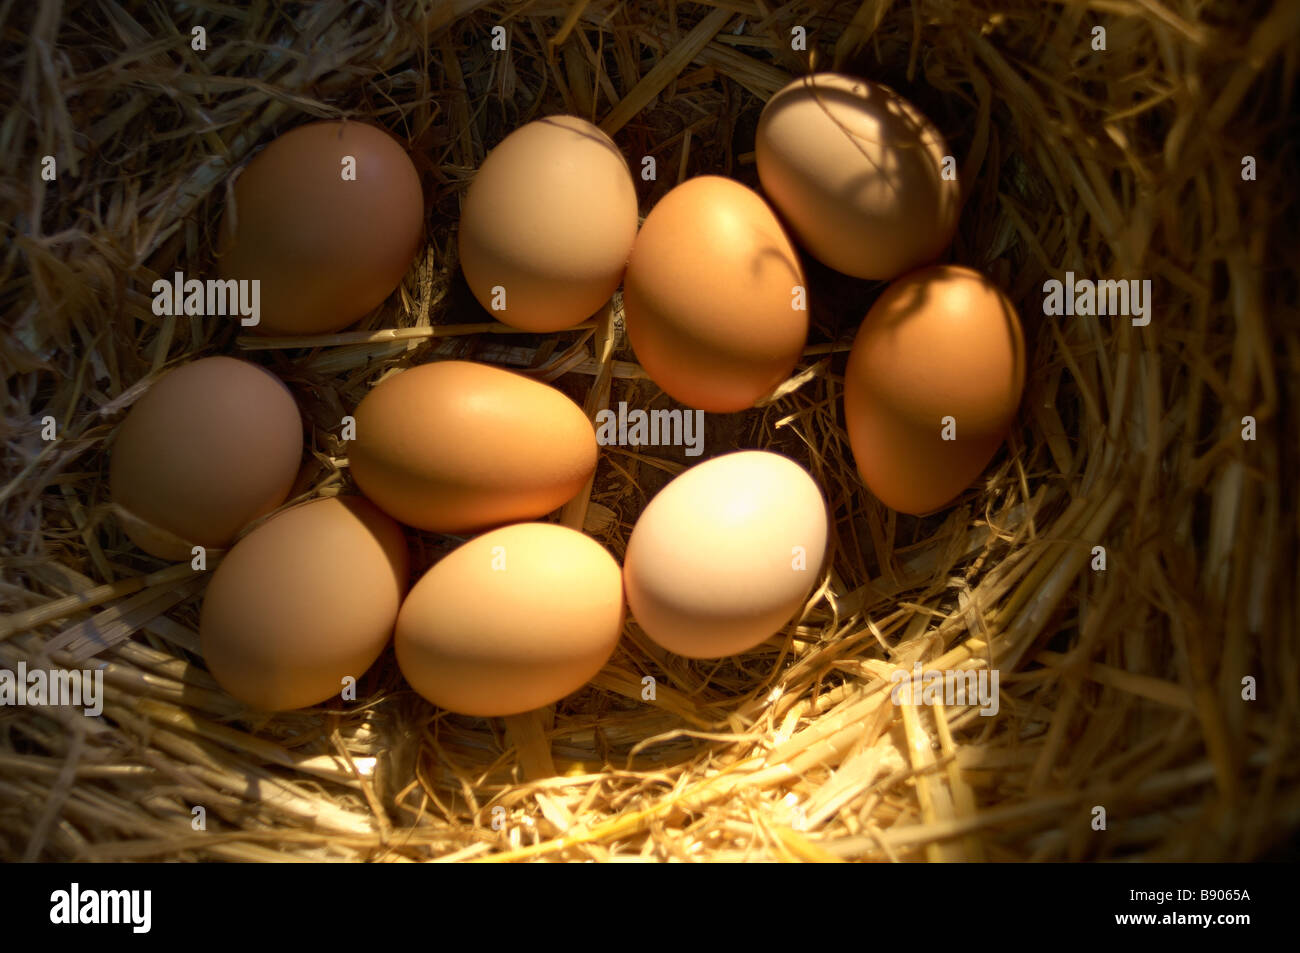 Free range eggs - Stock Image